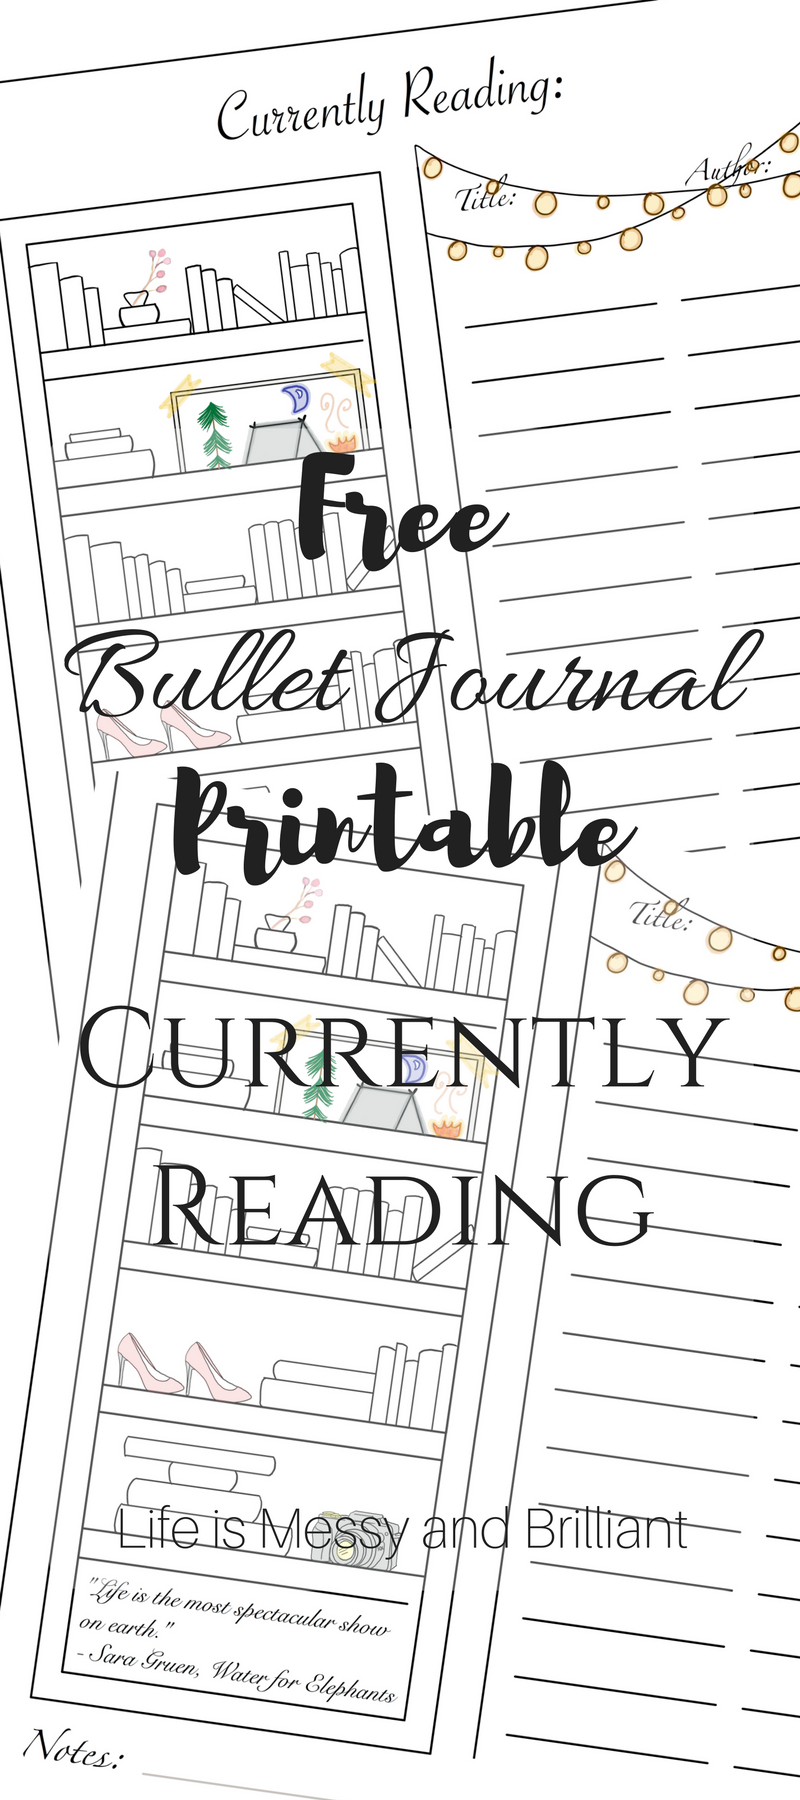 Free Currently Reading Bullet Journal Printable Tracker | Bullet - Free Printable Reading Recovery Books